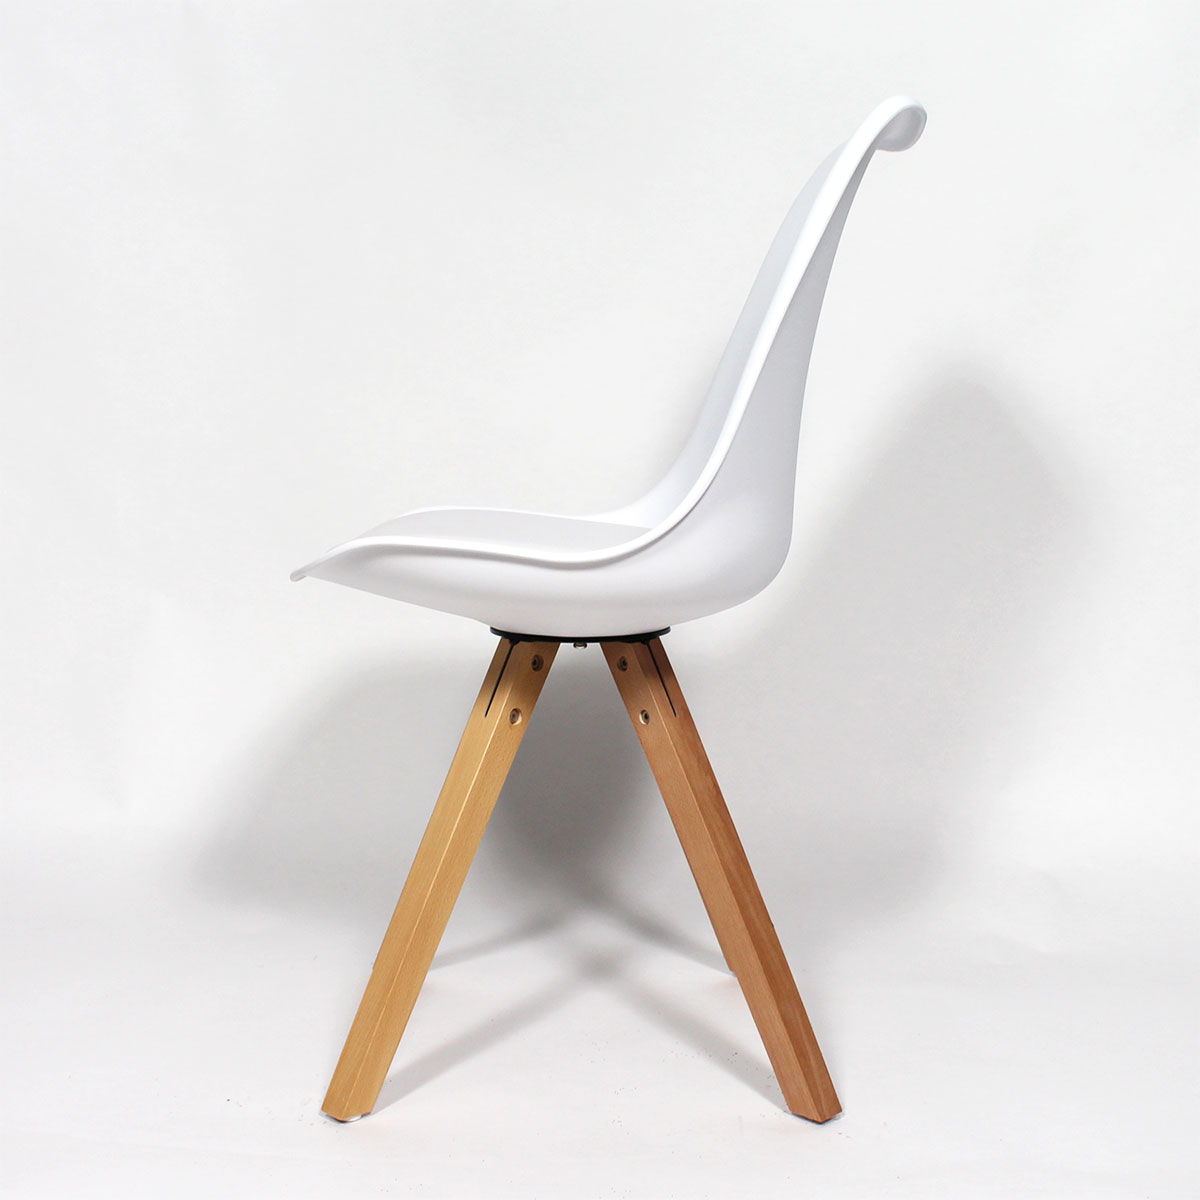 Chaise design scandinave blanche